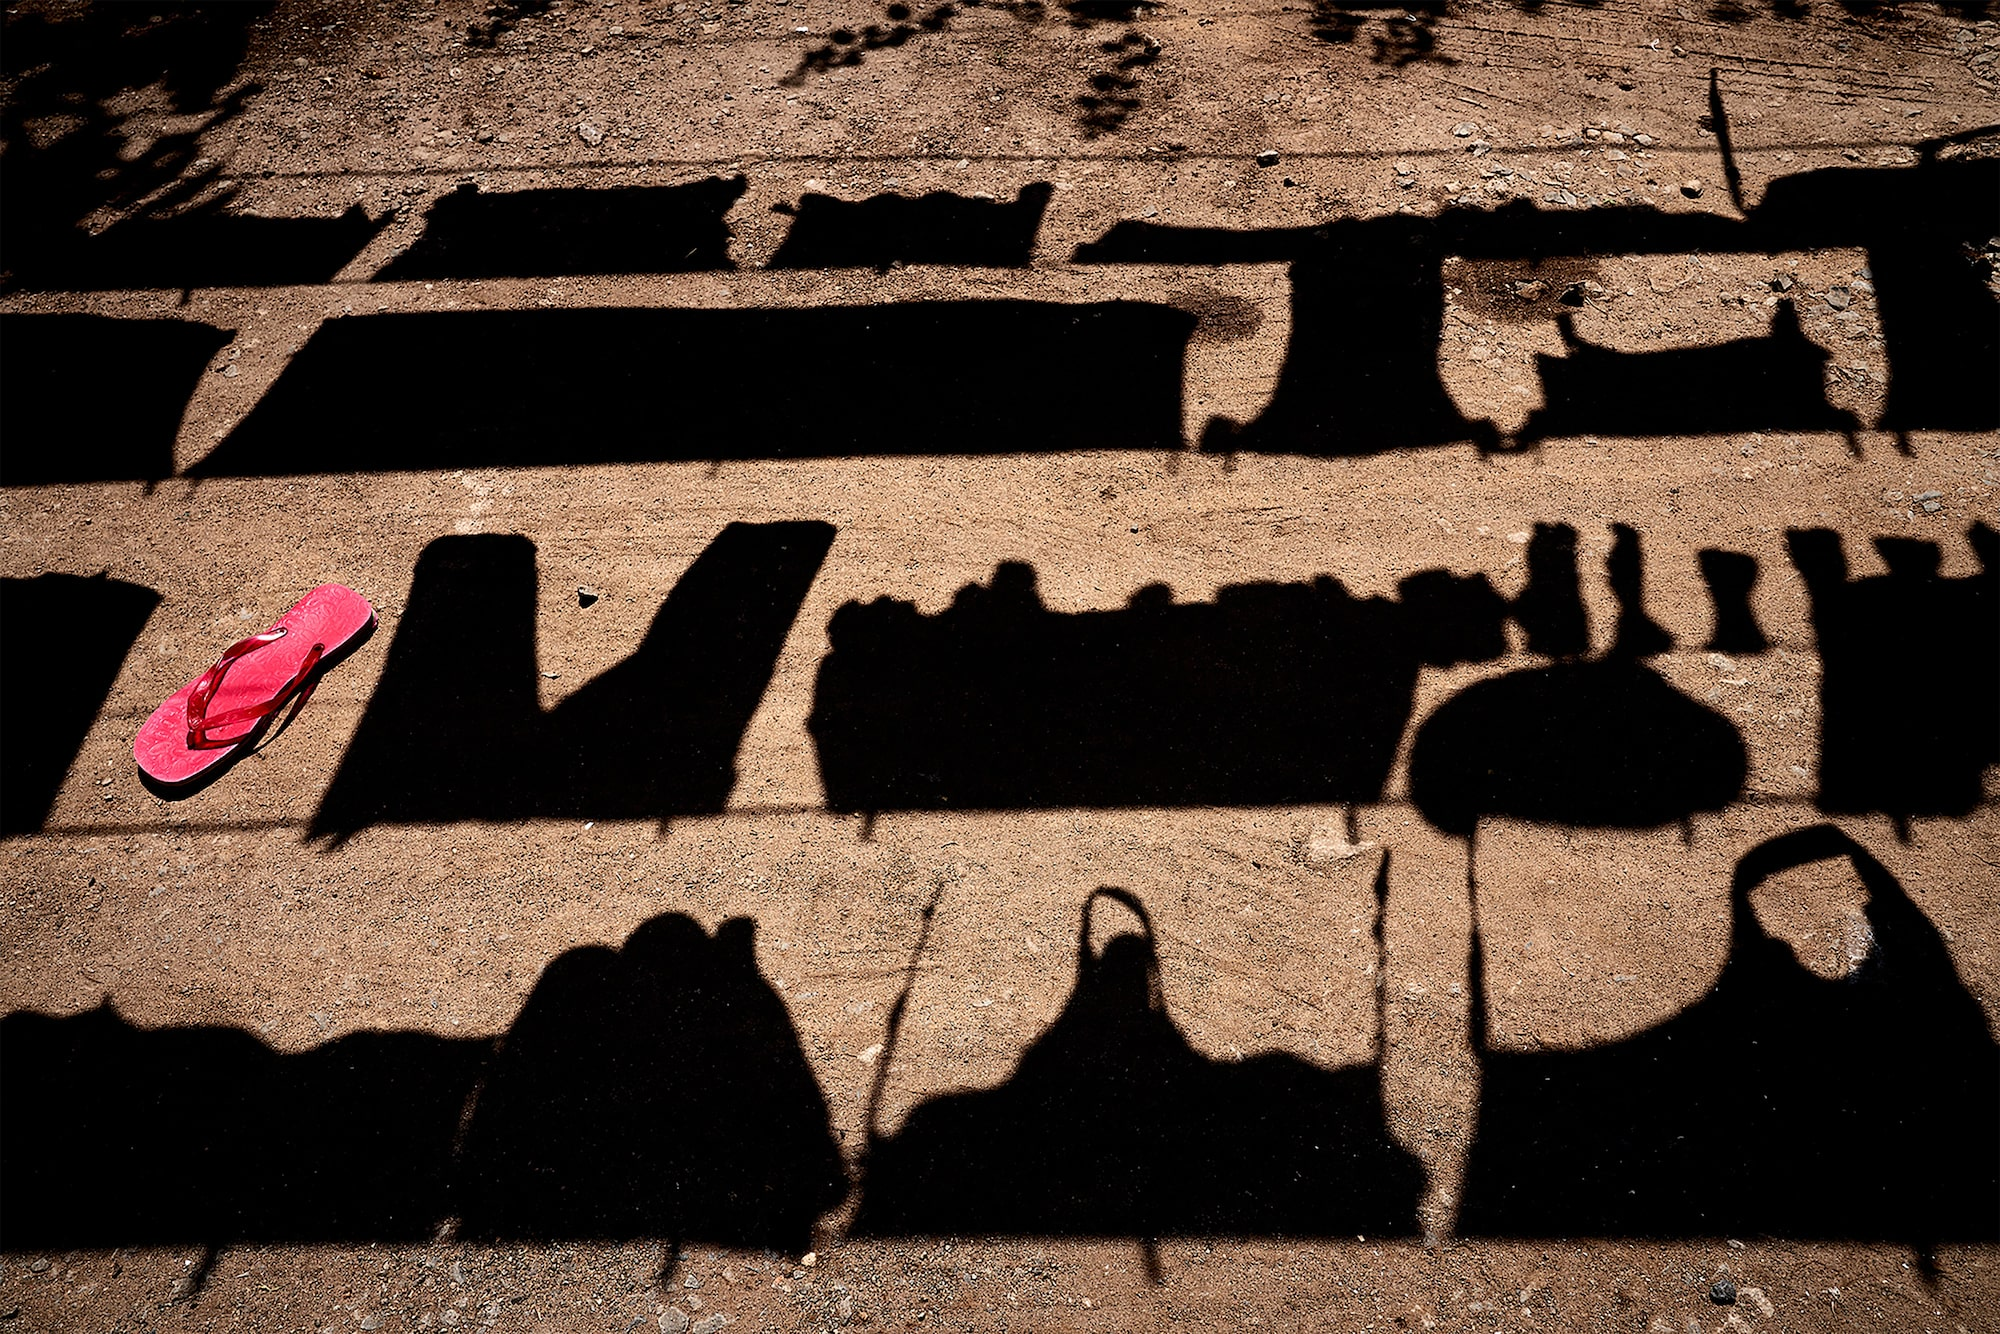 tomasz tomaszewski sony alpha 7RM3 shadows from washing hanging on a clothes line with a pink flip flop in the frame